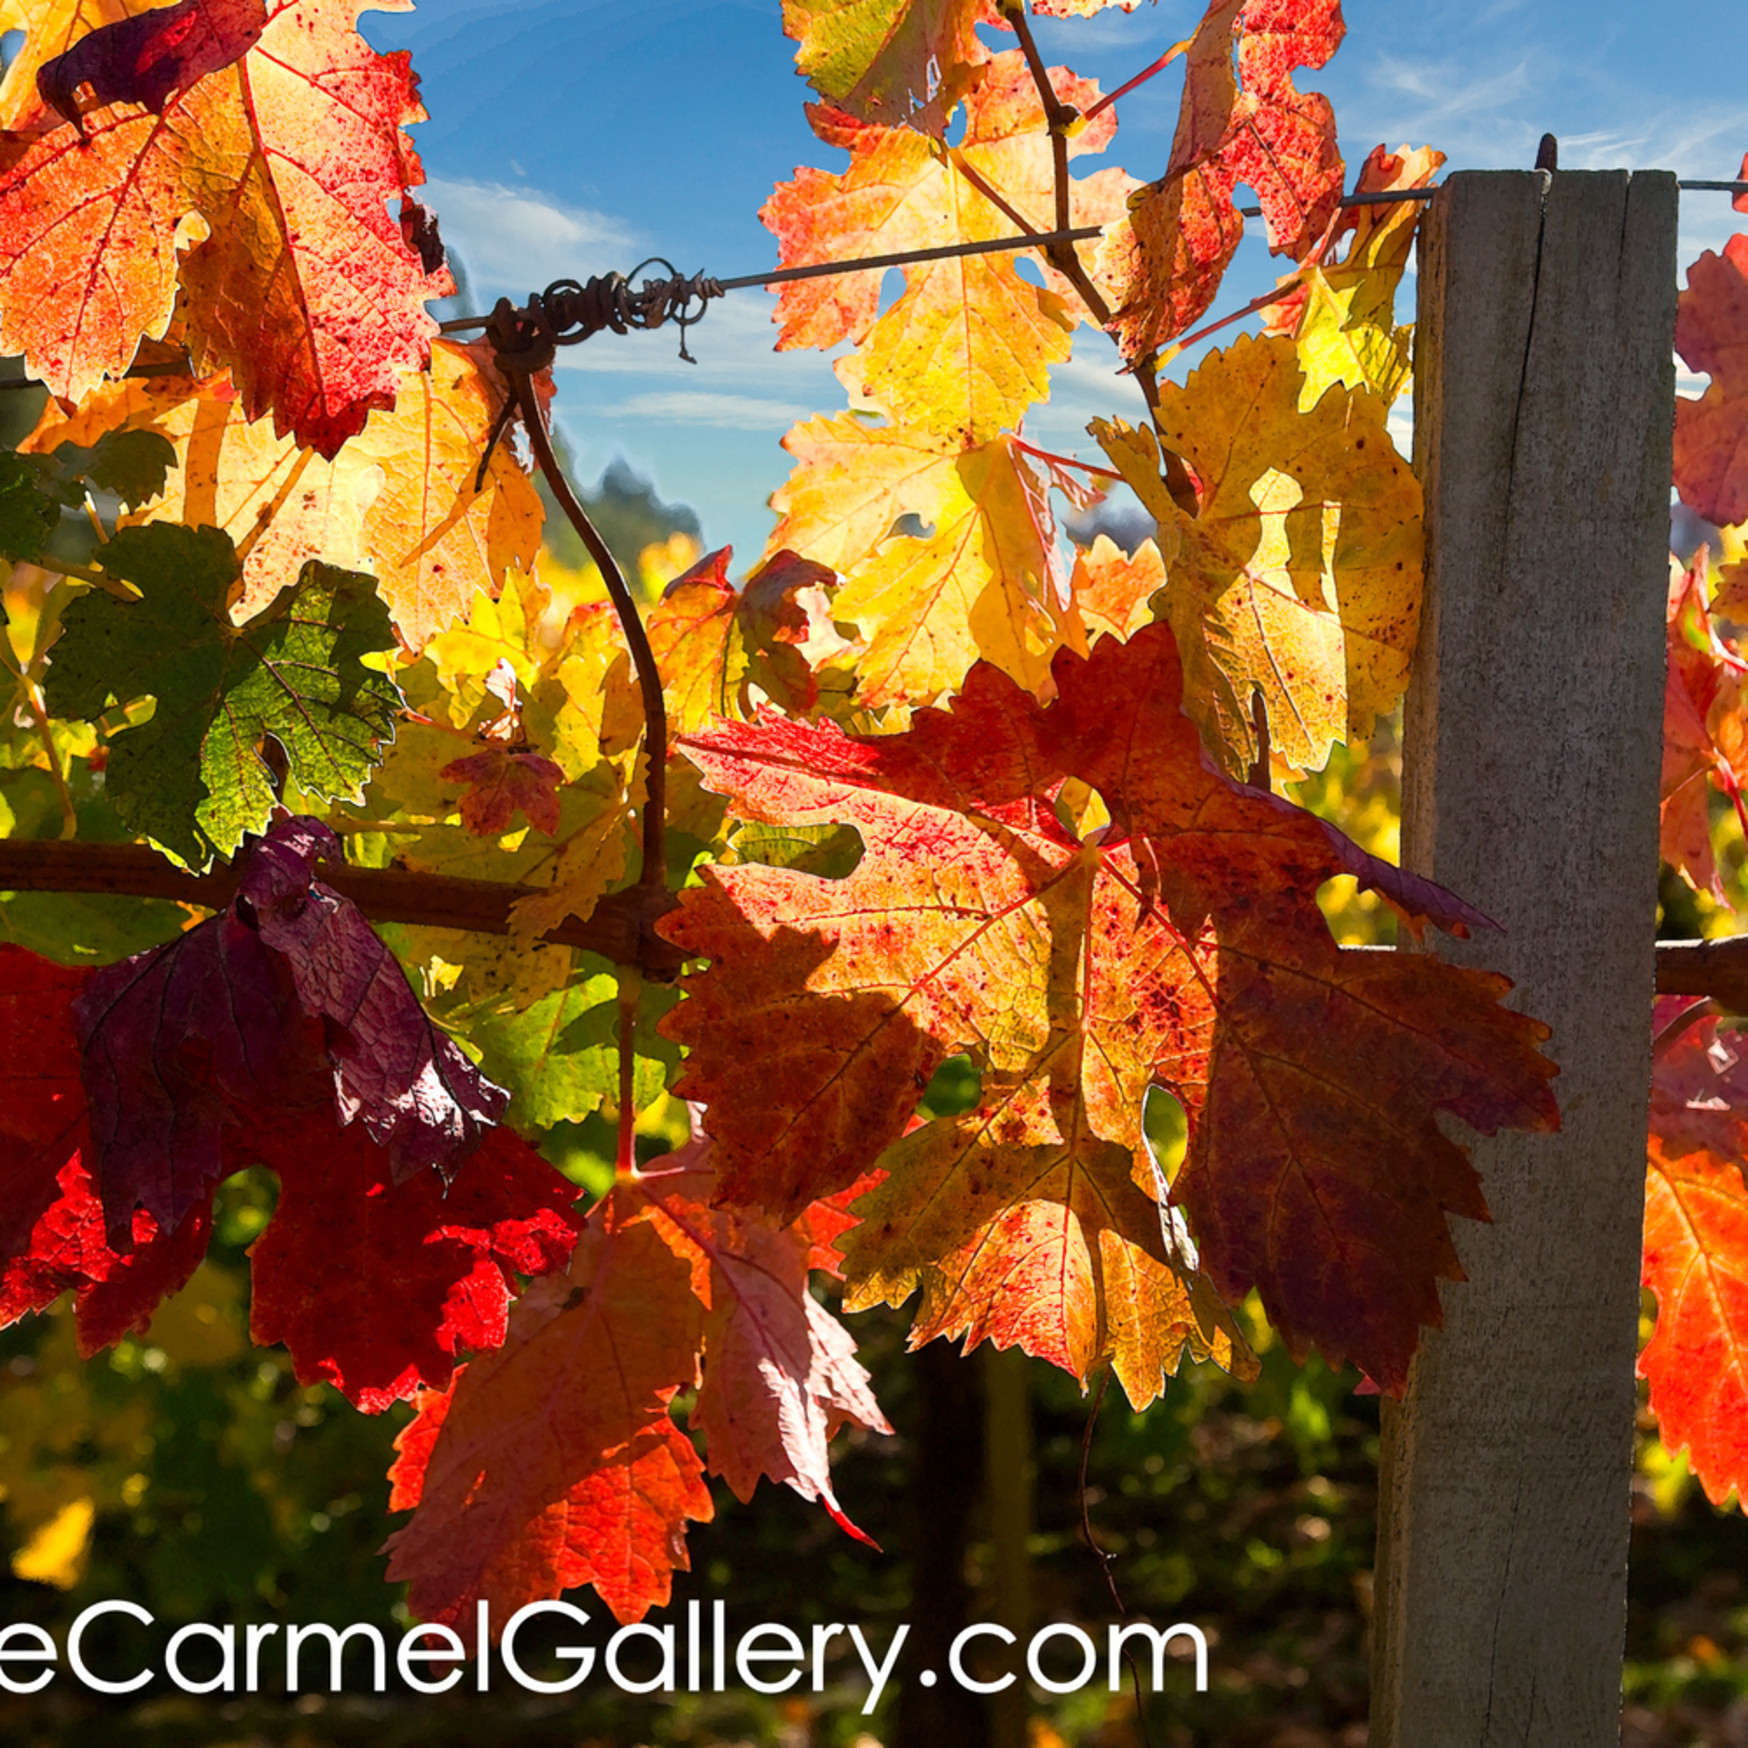 Vineyard fall foliage tbhejg